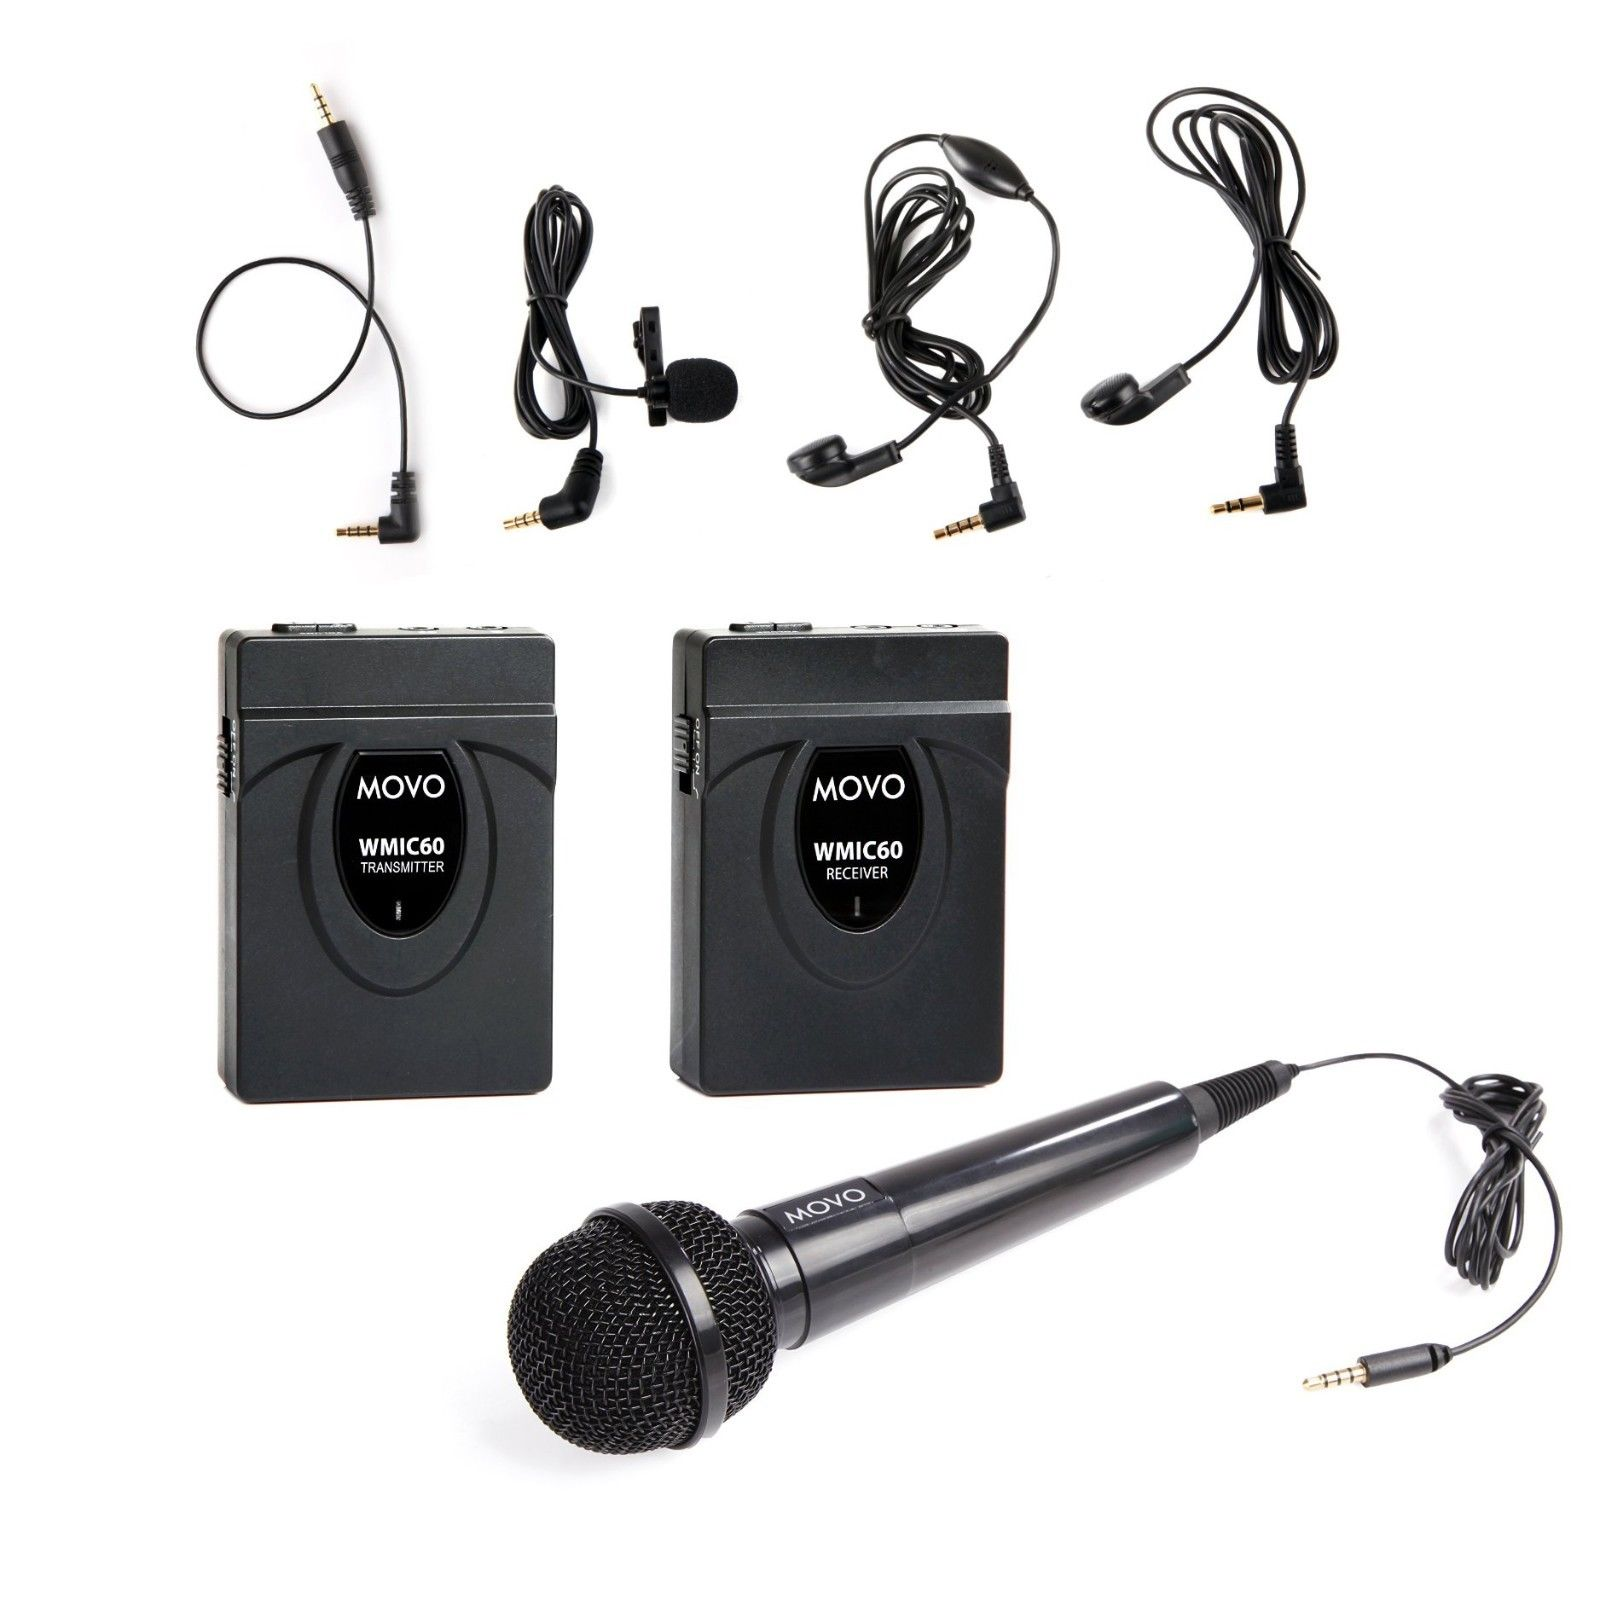 Movo WMIC60 2.4GHz Wireless Lavalier and Handheld Microphone System with Integrated... by